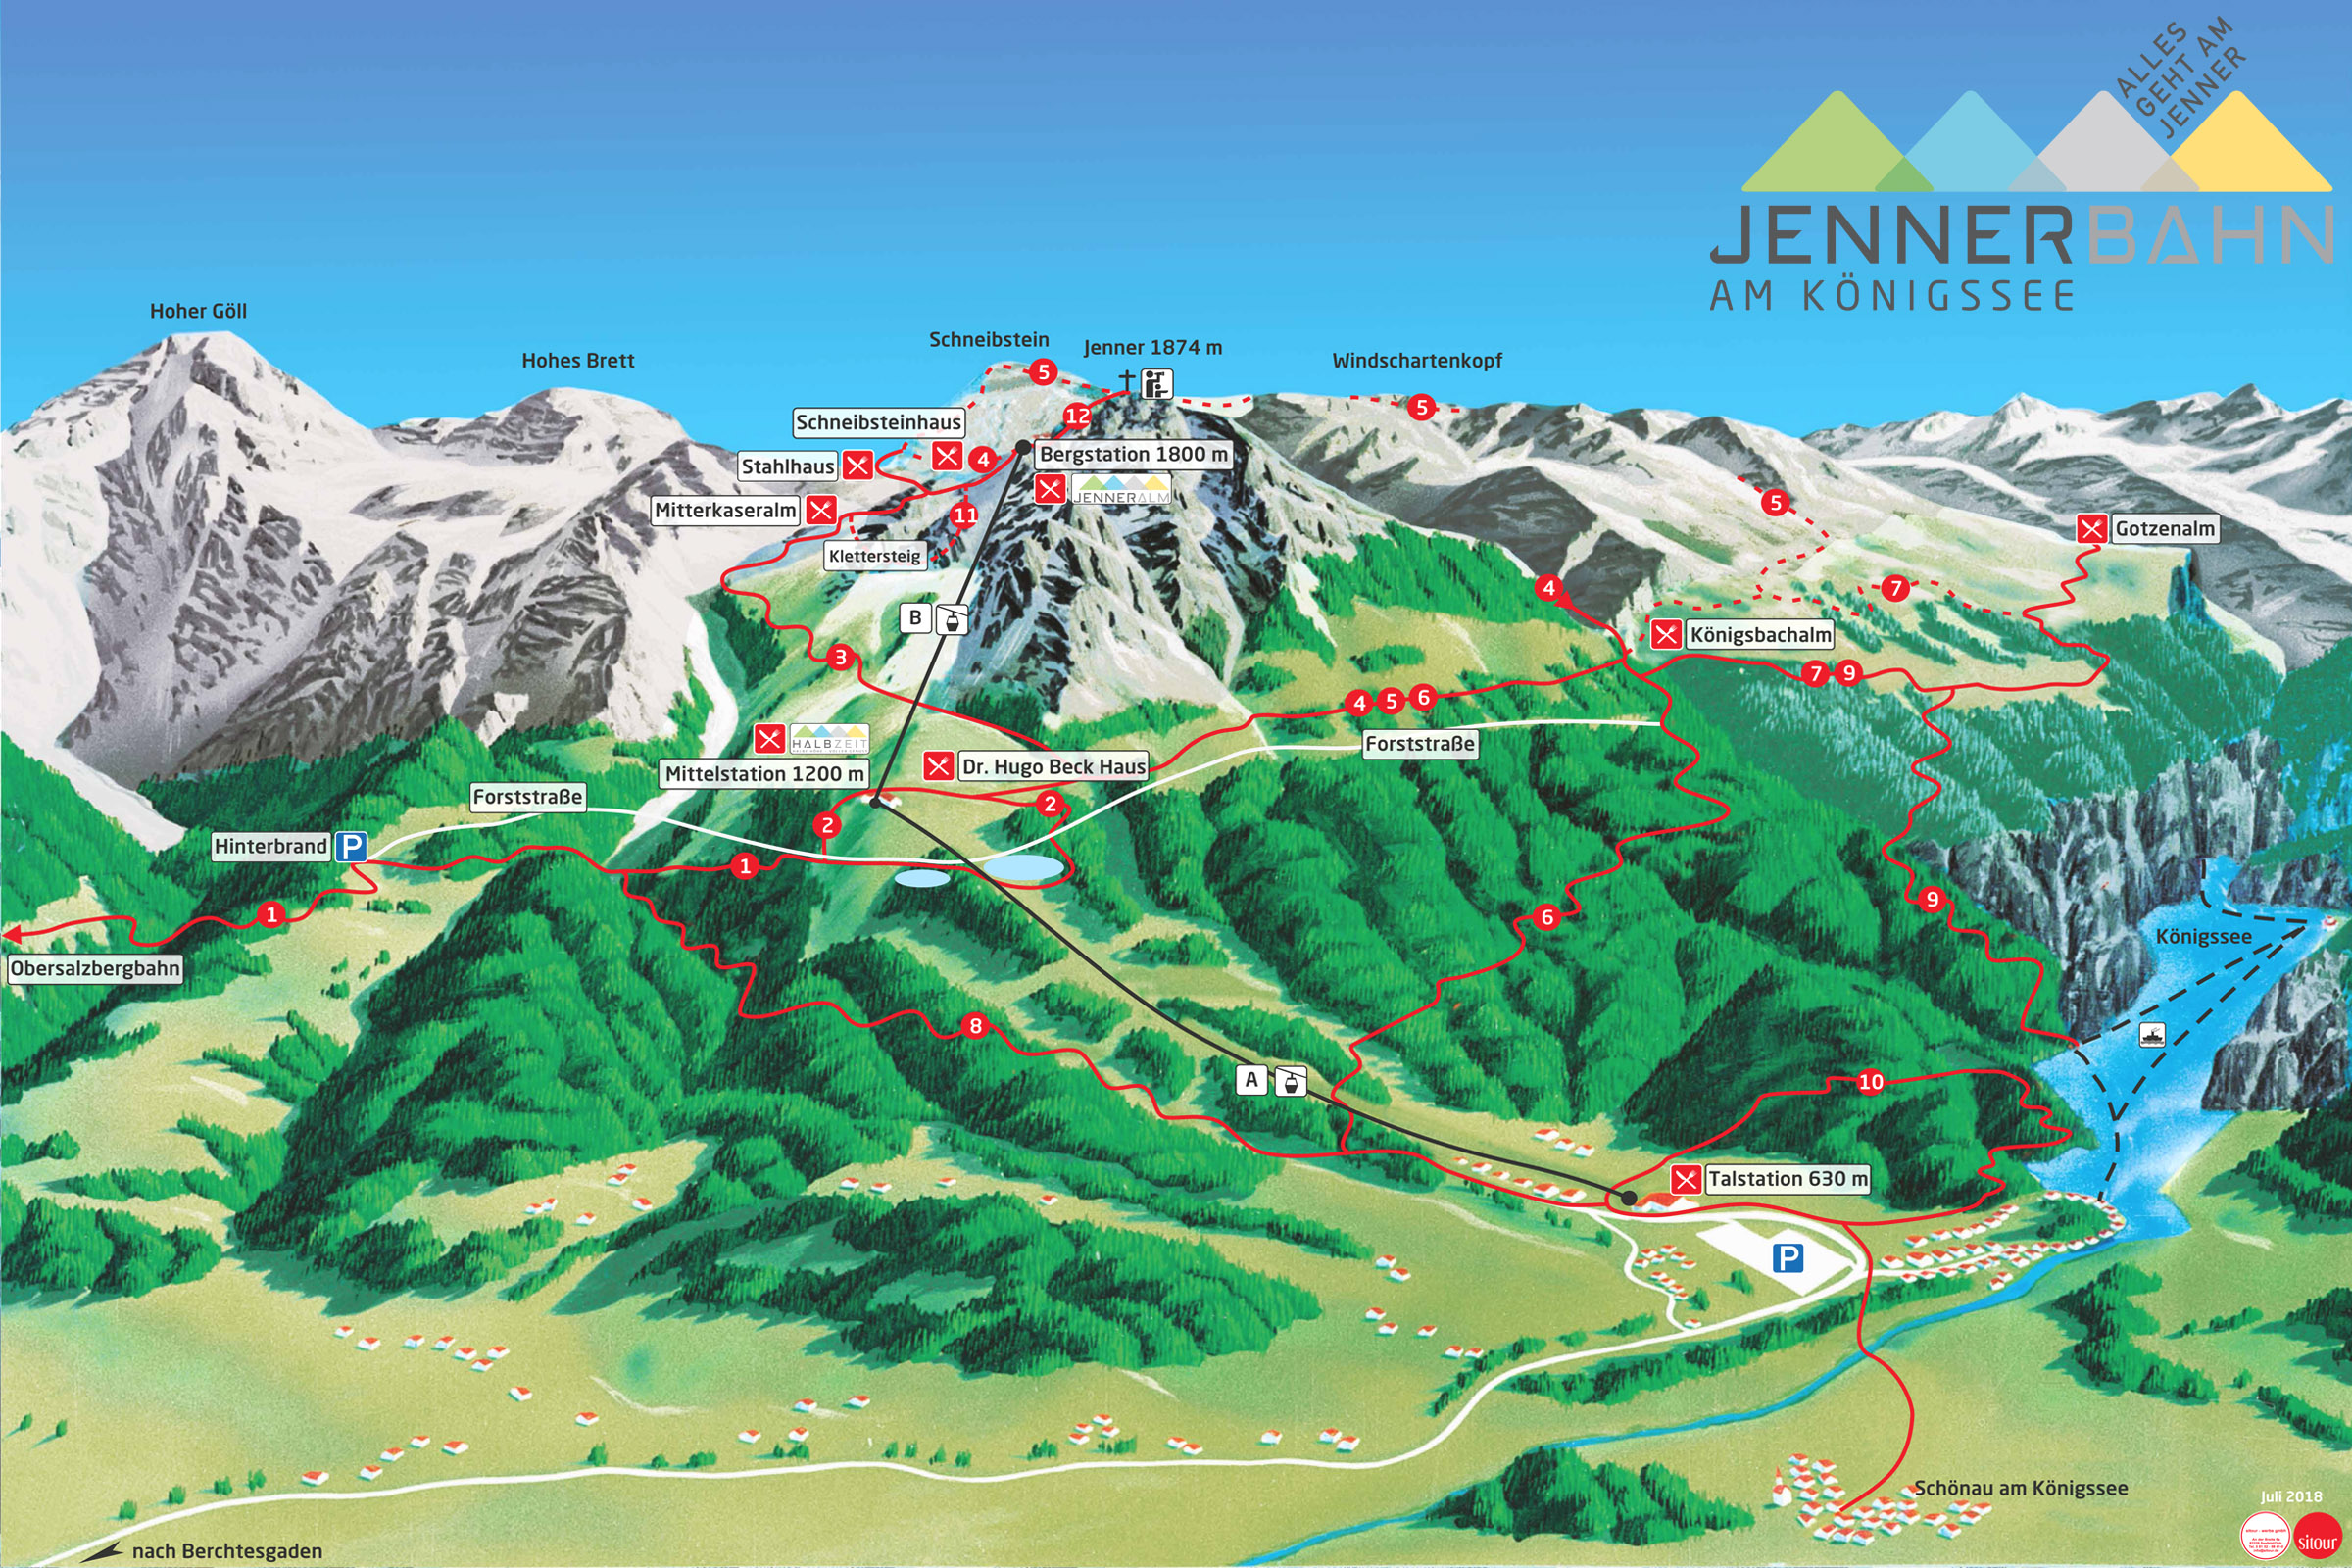 Mount Jenner map